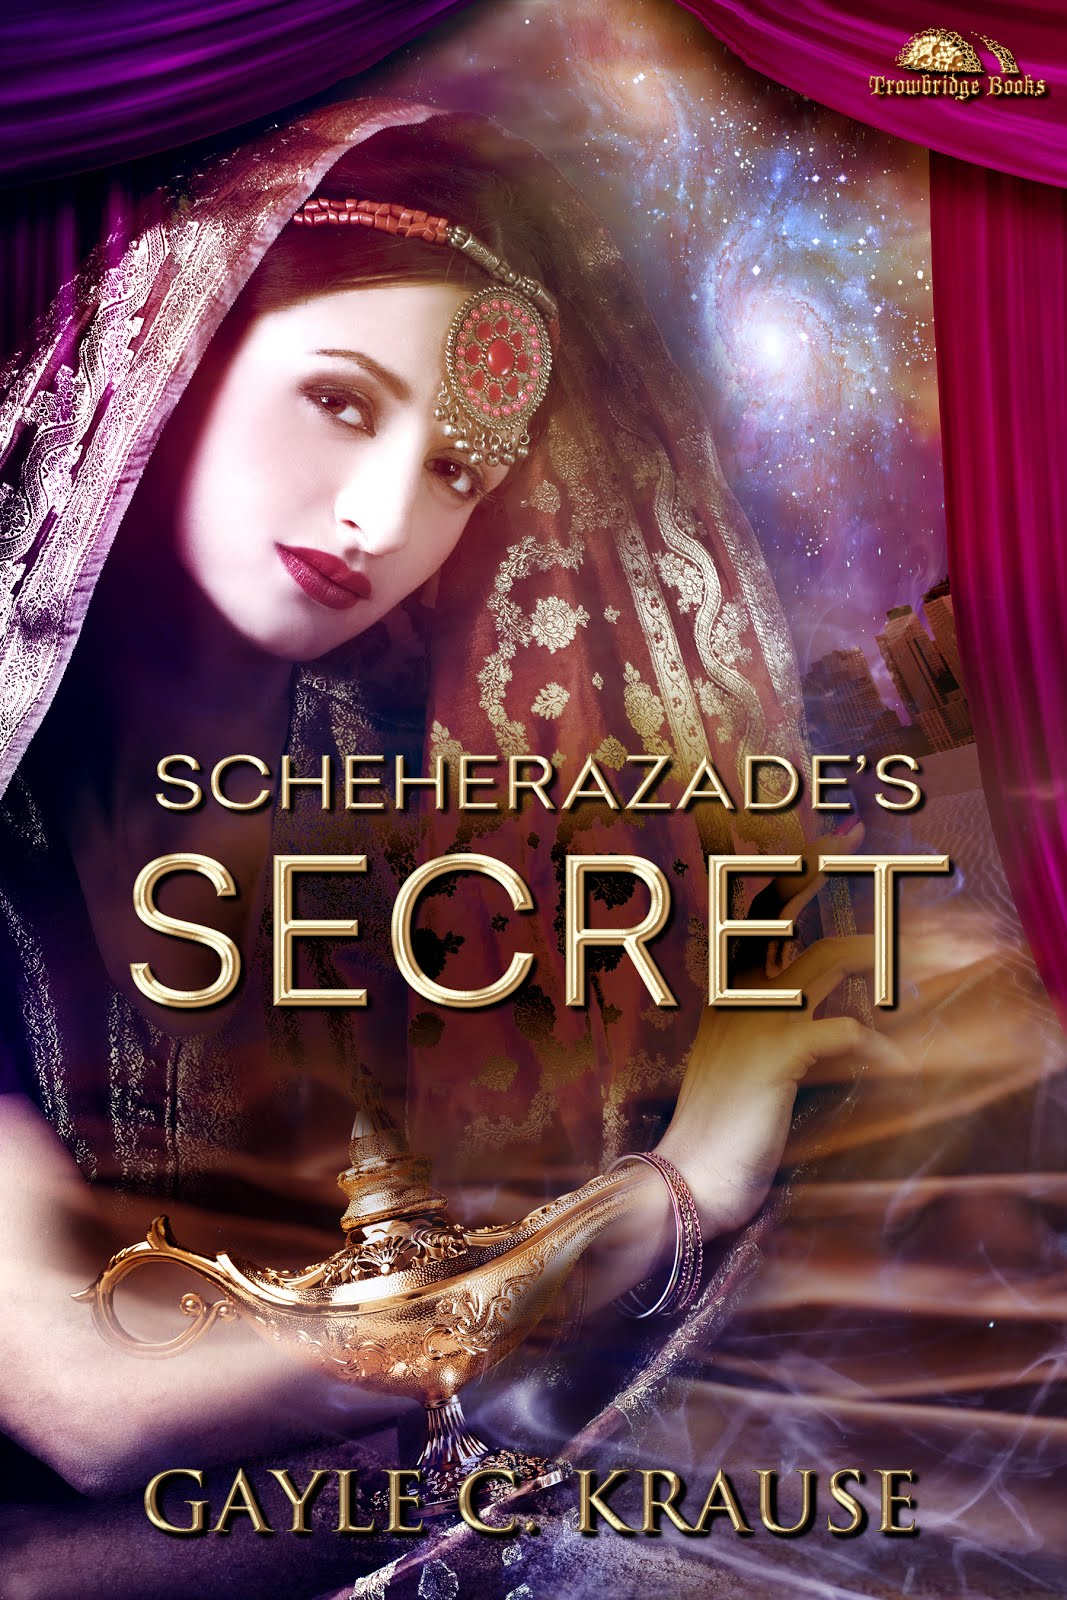 SCHEHERAZADE'S SECRET